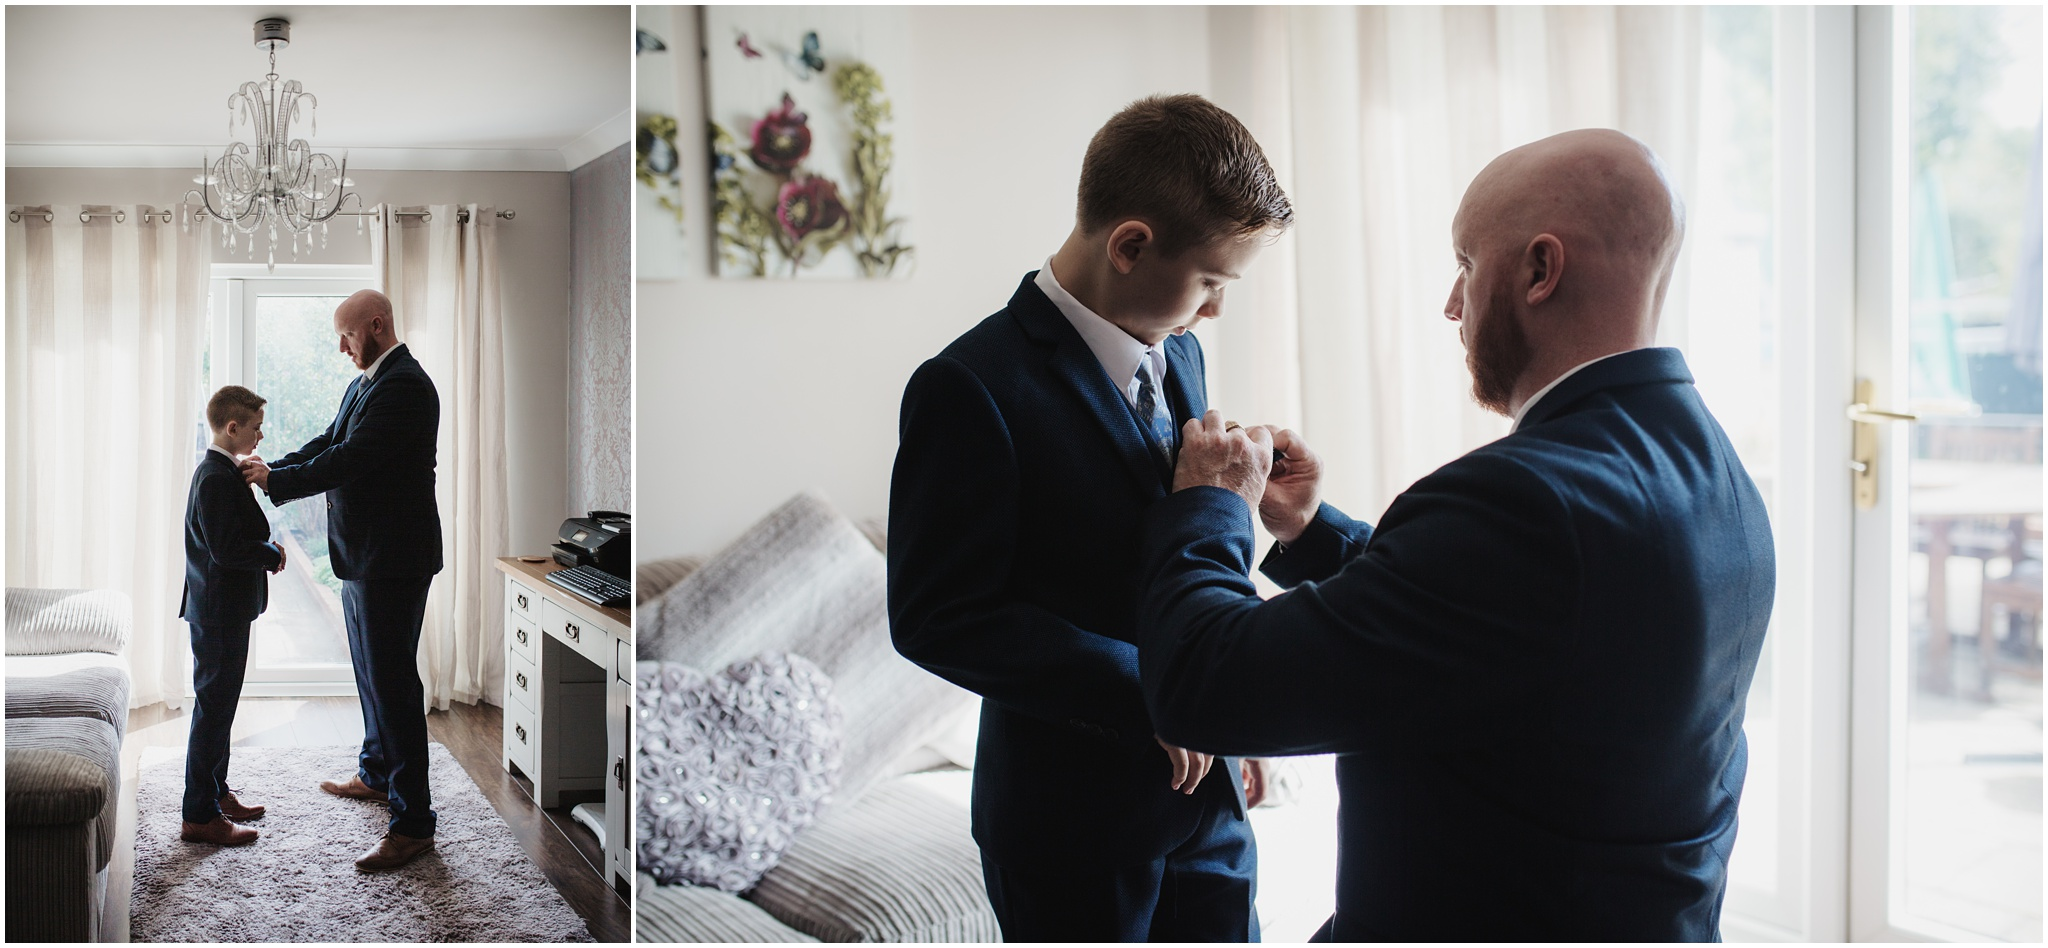 The Rochford Hotel wedding photography - the groom & son getting ready